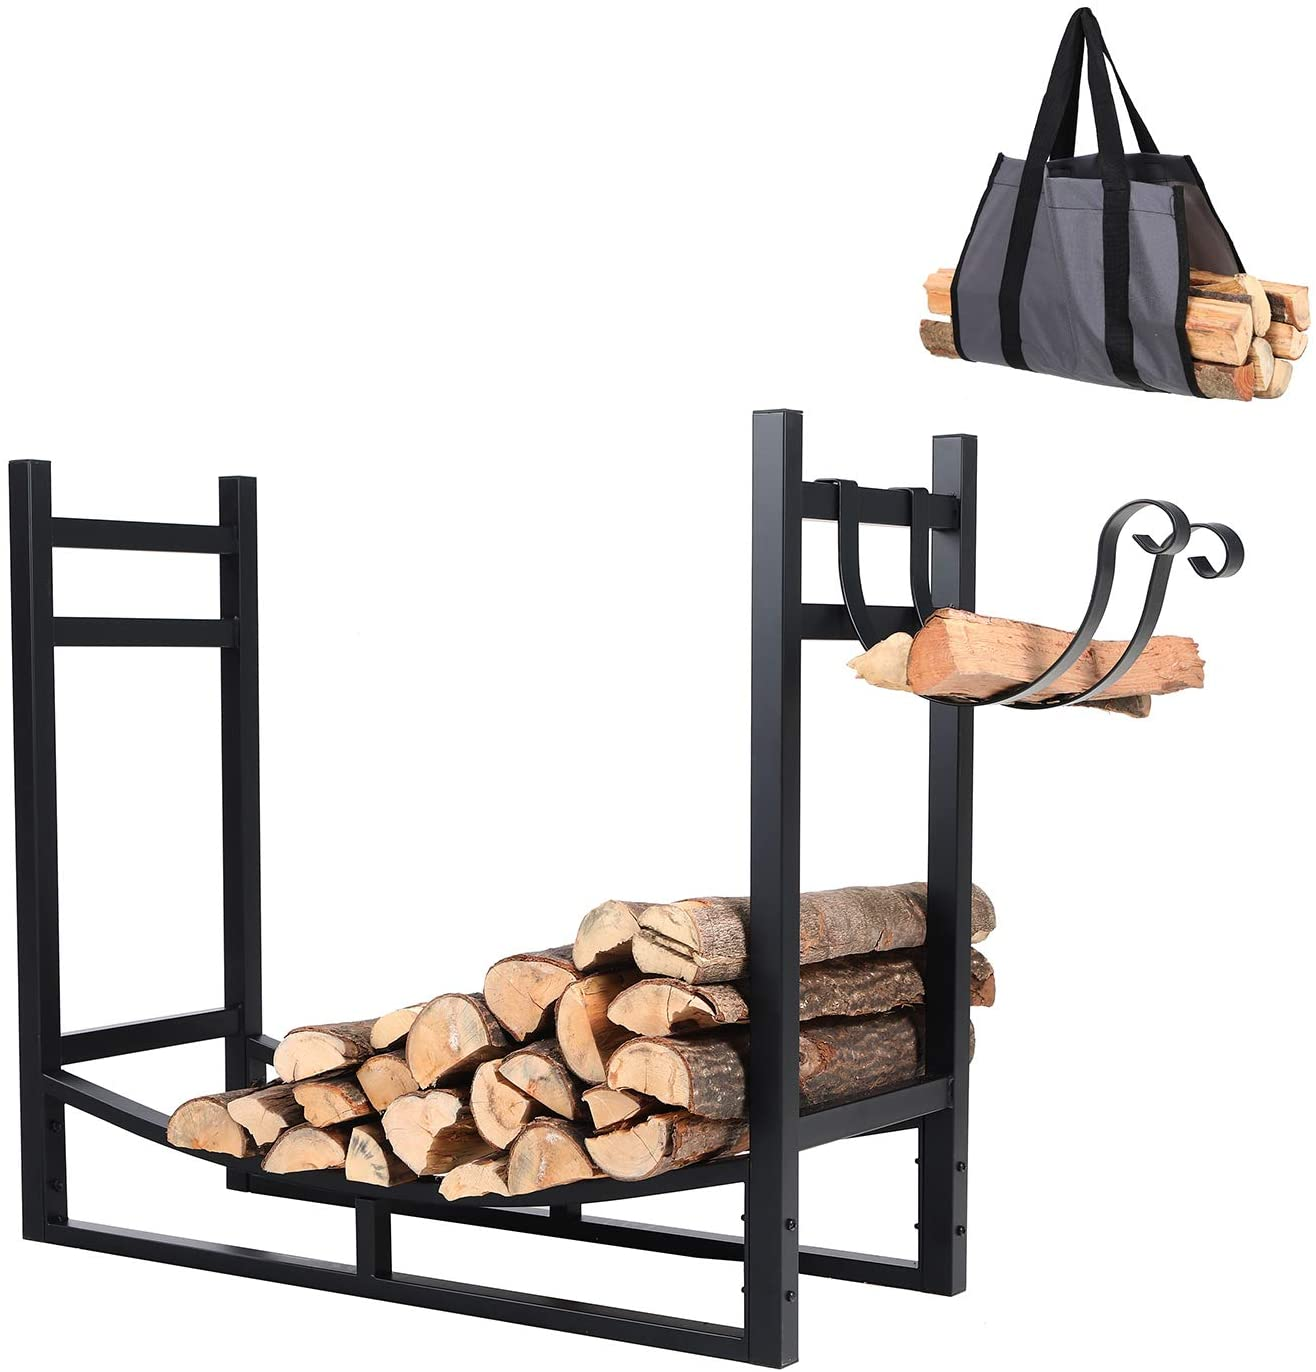 PHI VILLA Heavy Duty Firewood Racks